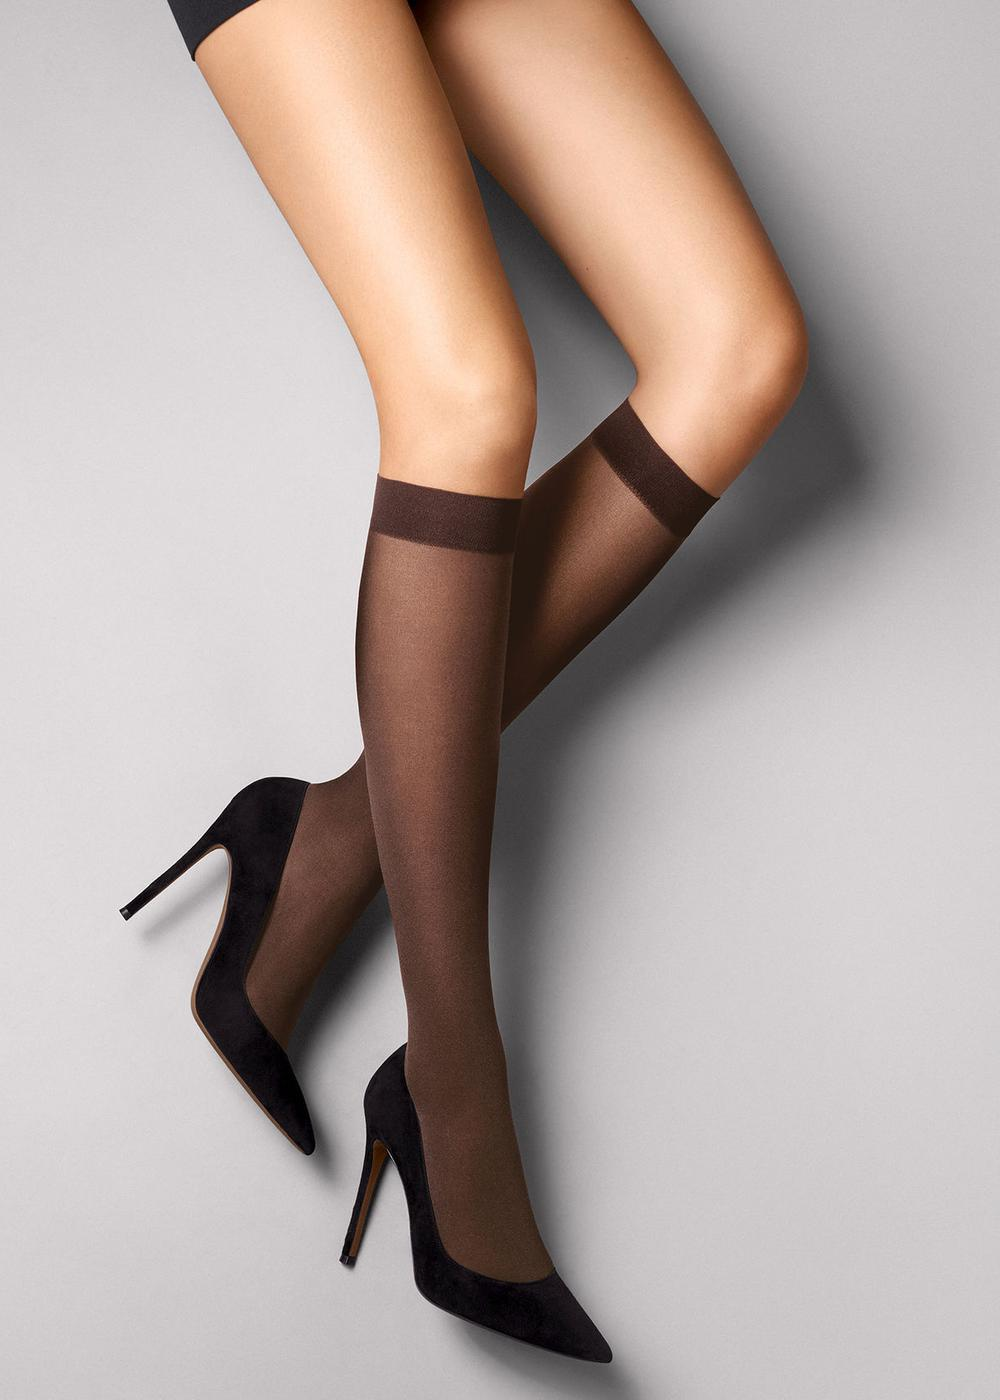 Wolford product